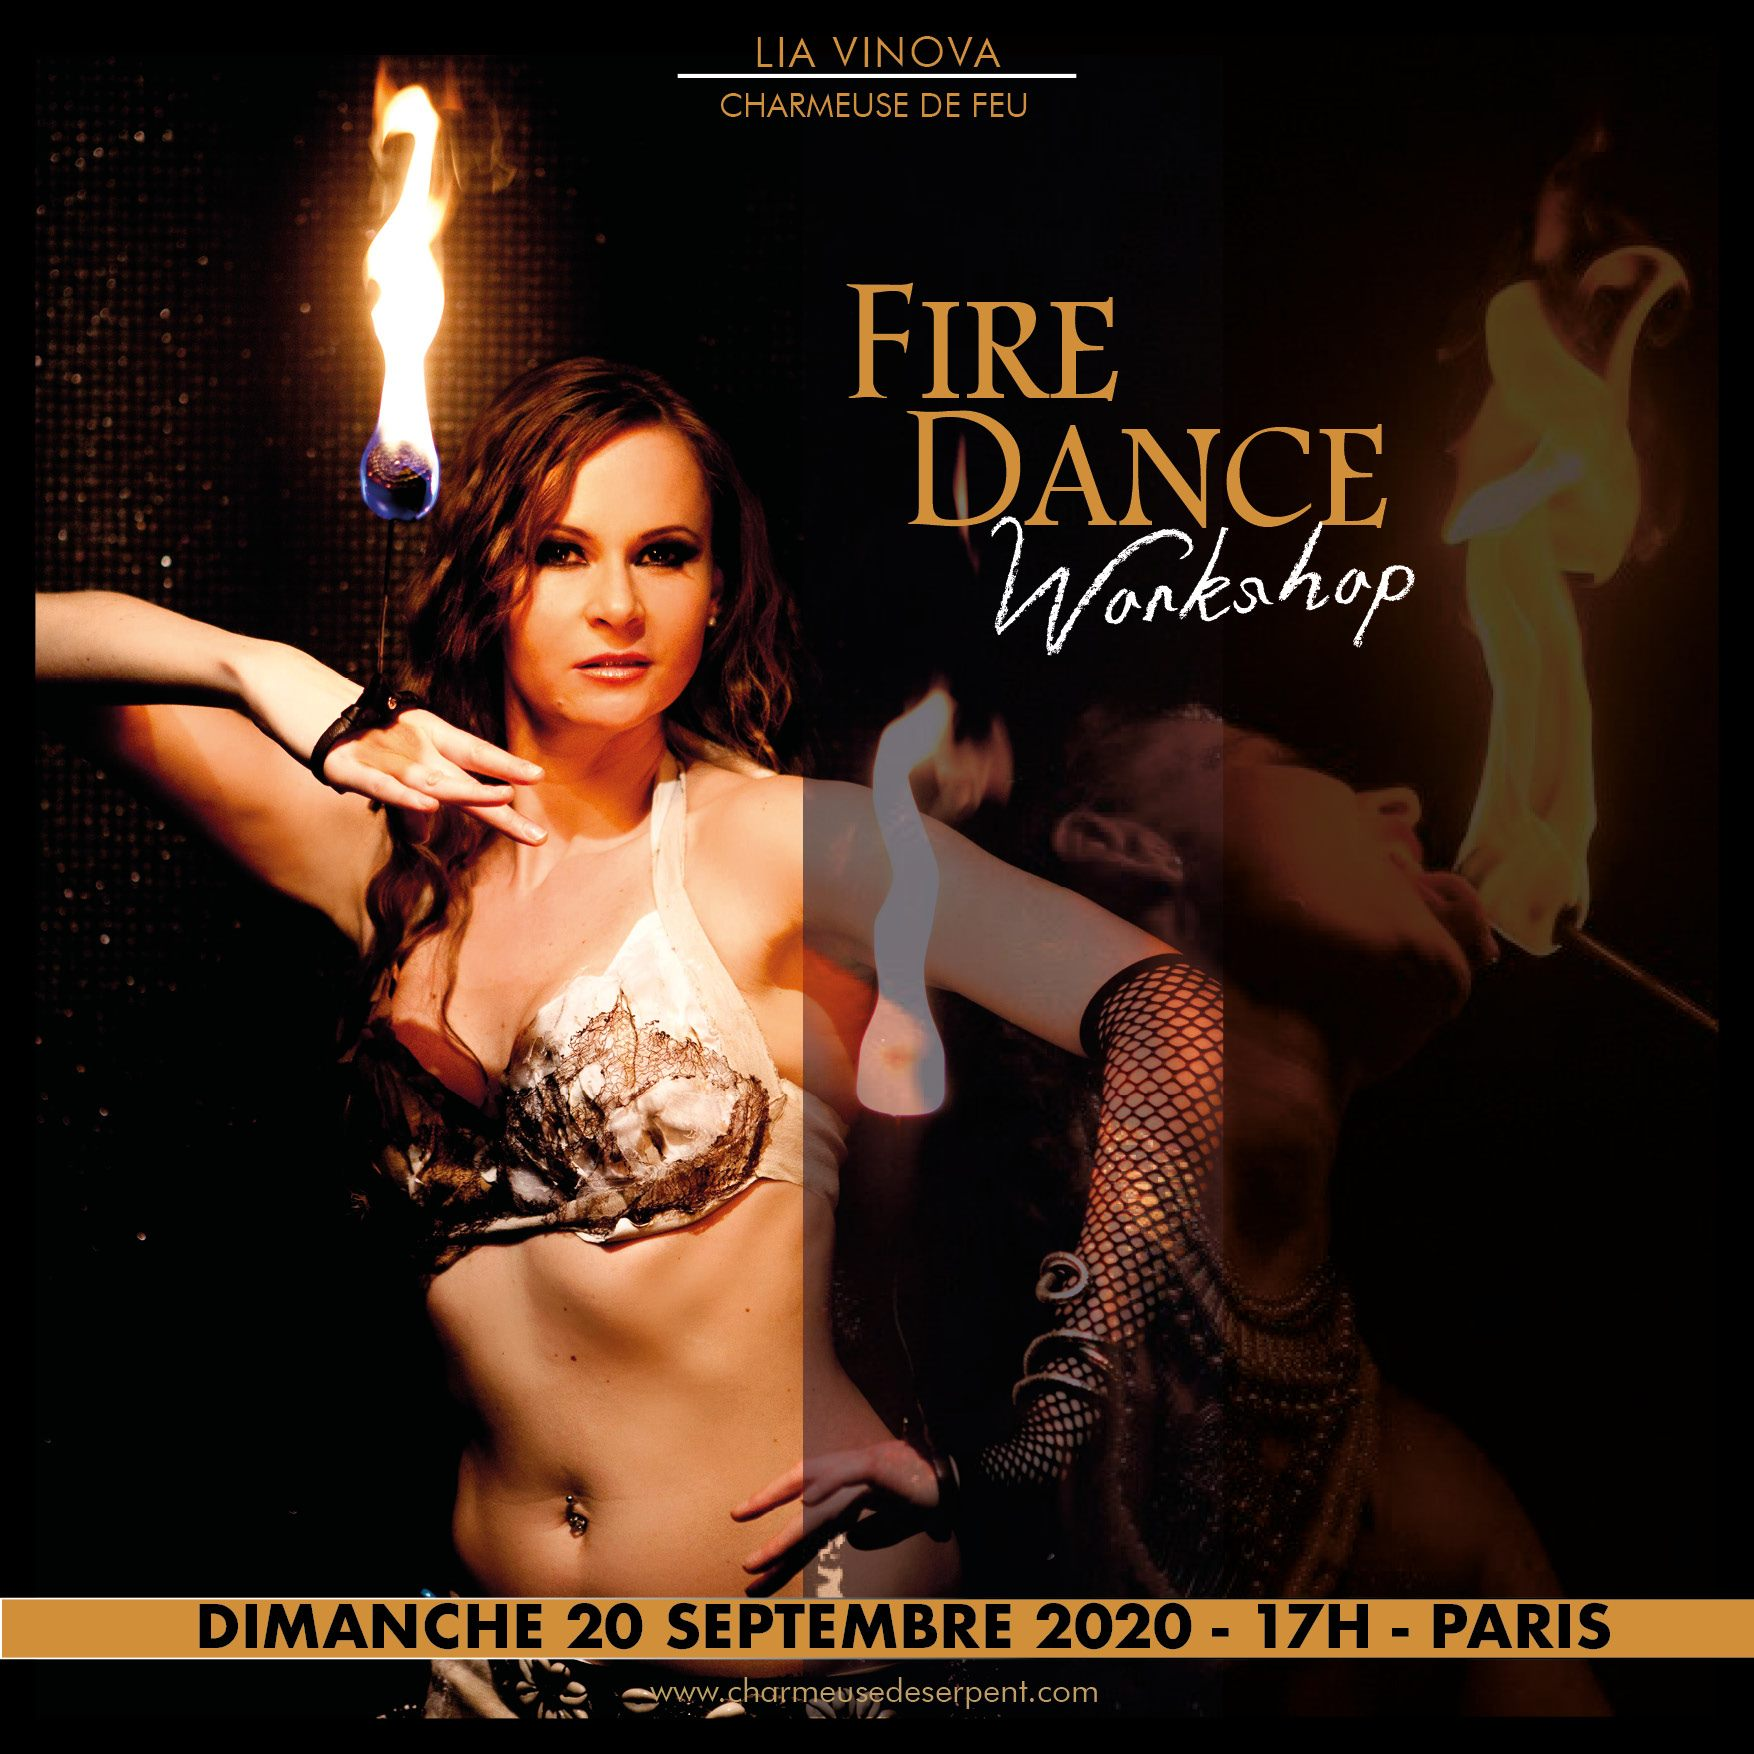 FIRE DANCE Workshop